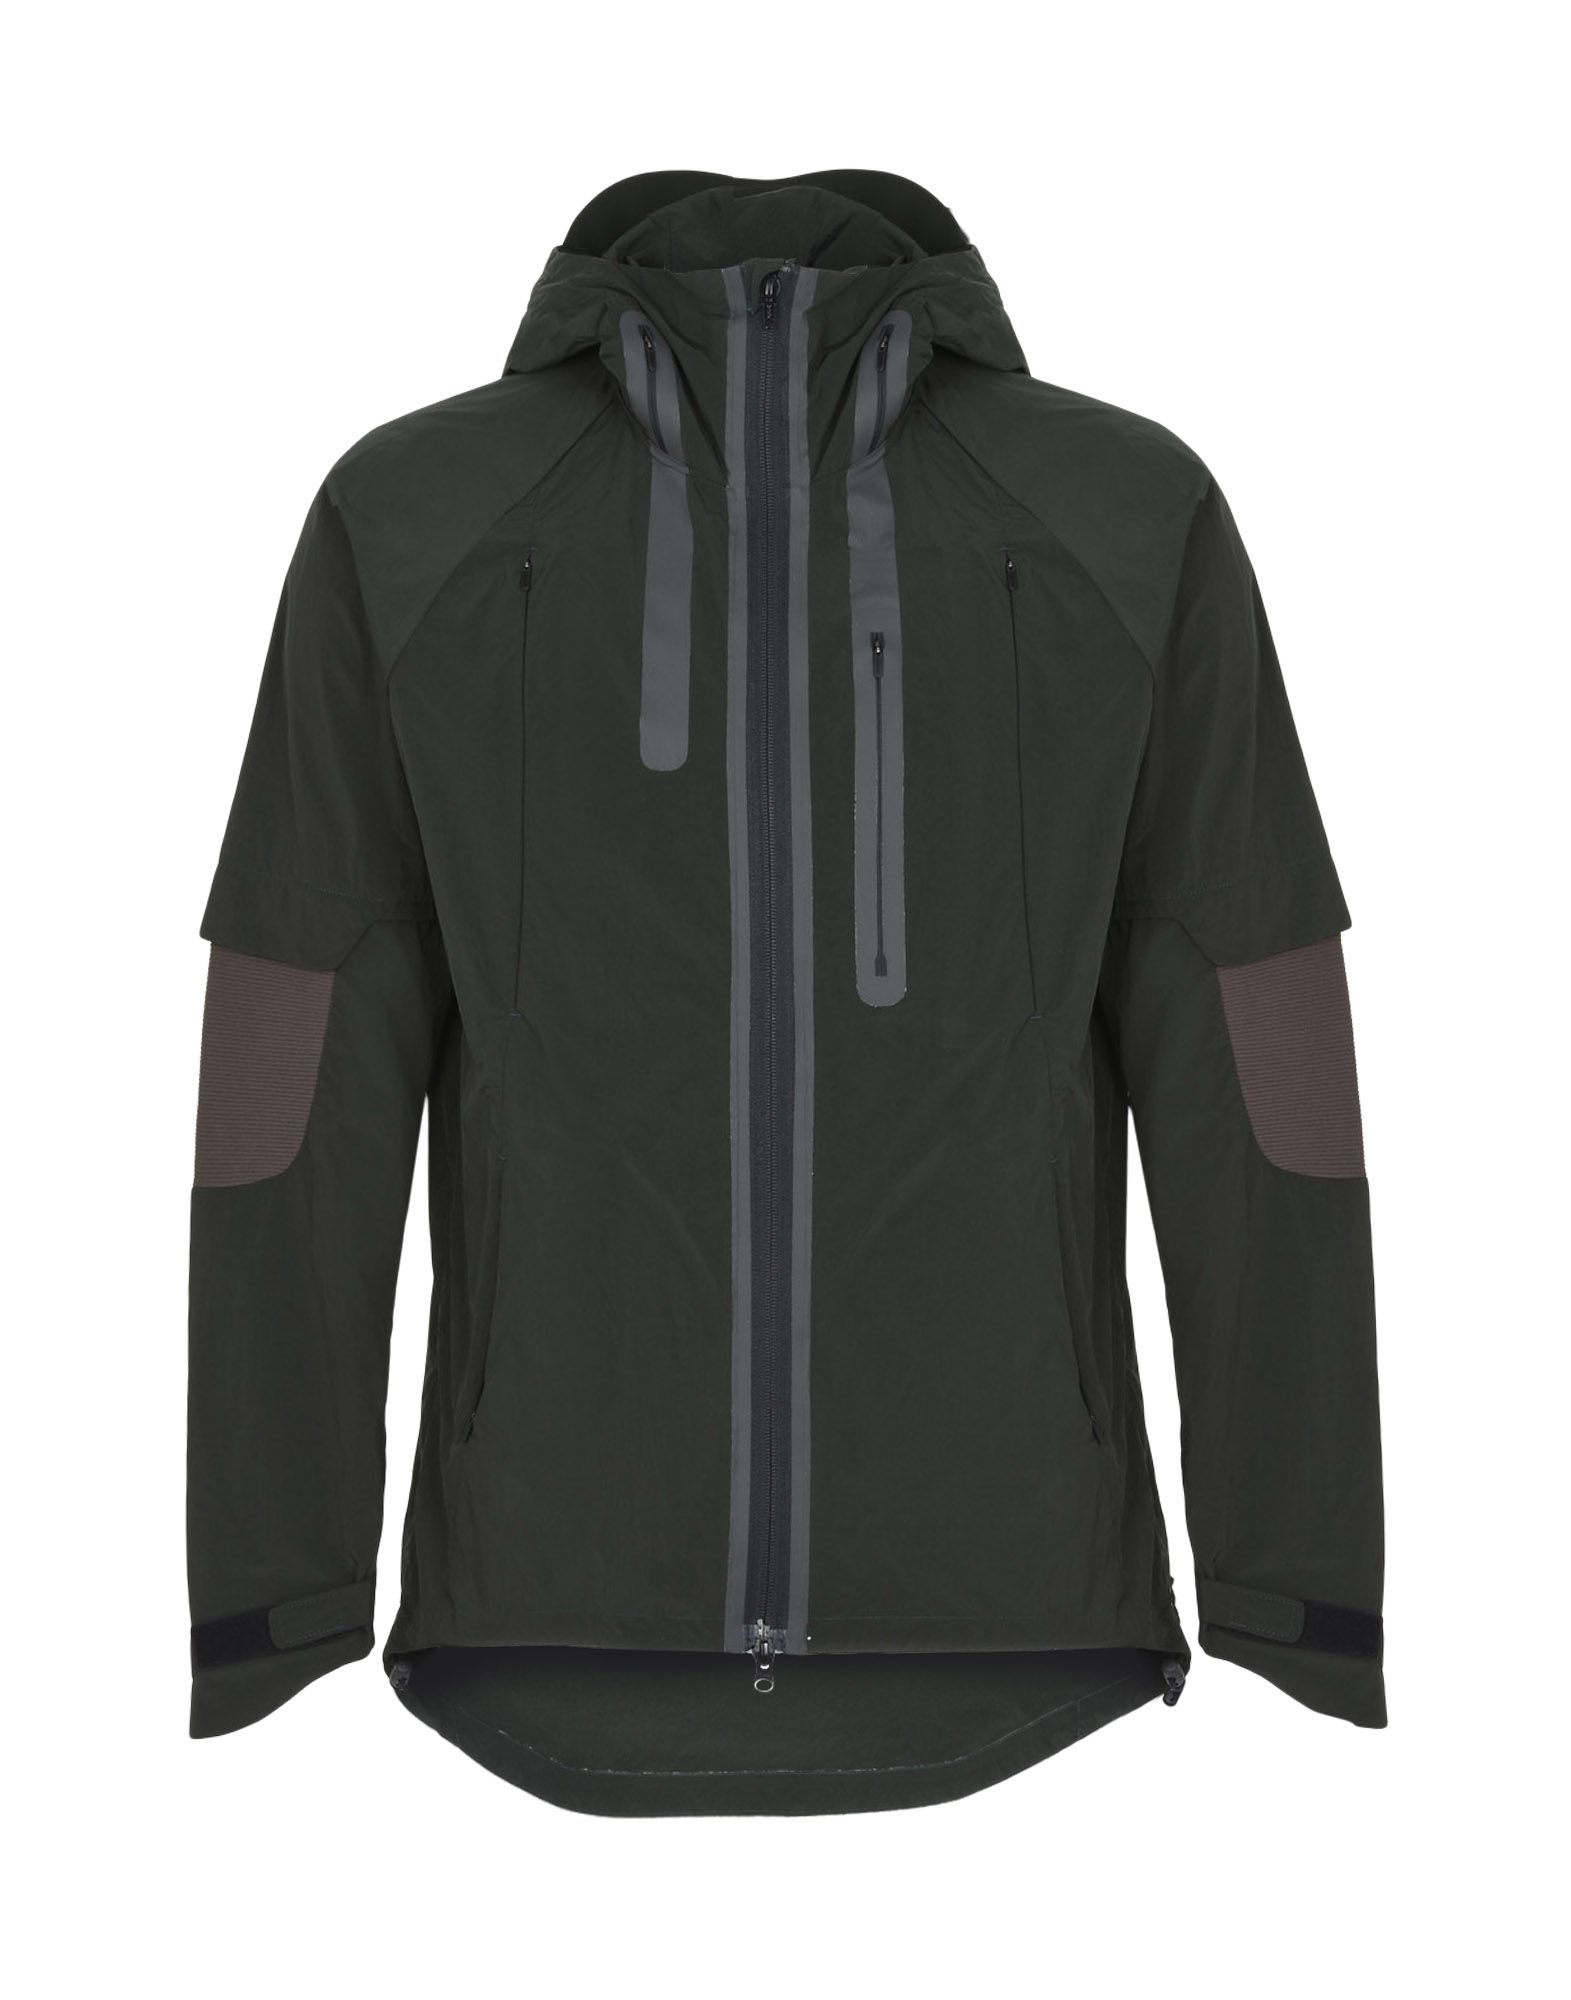 Y 3 HOODED JACKET for Men | Adidas Y-3 Official Store